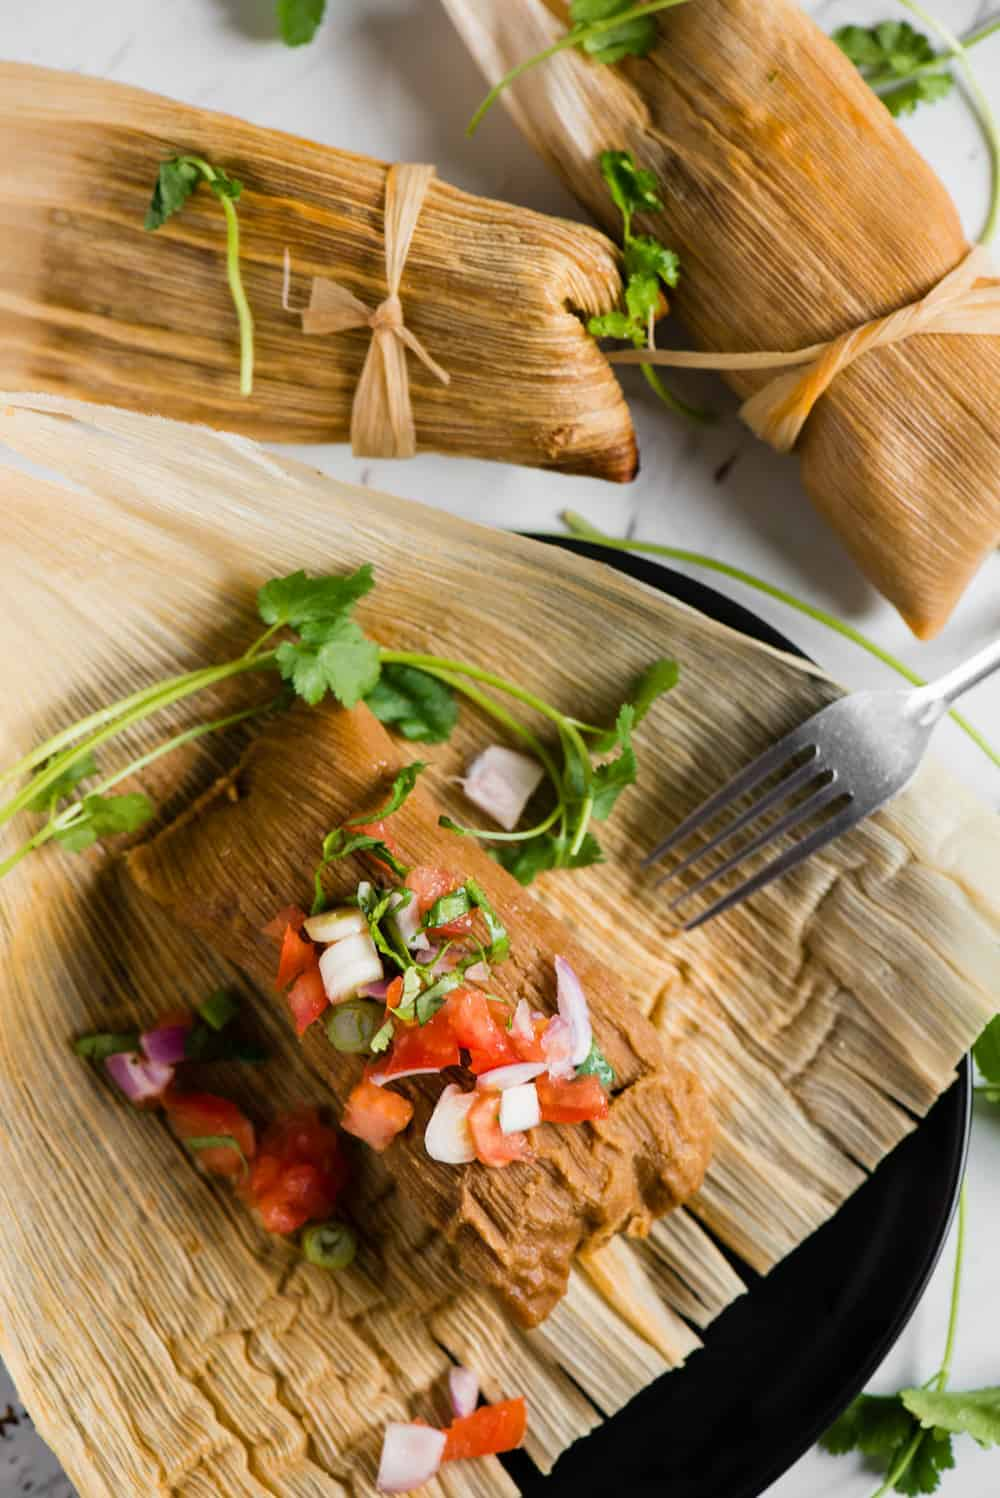 instant pot pork tamales on corn husk with salsa